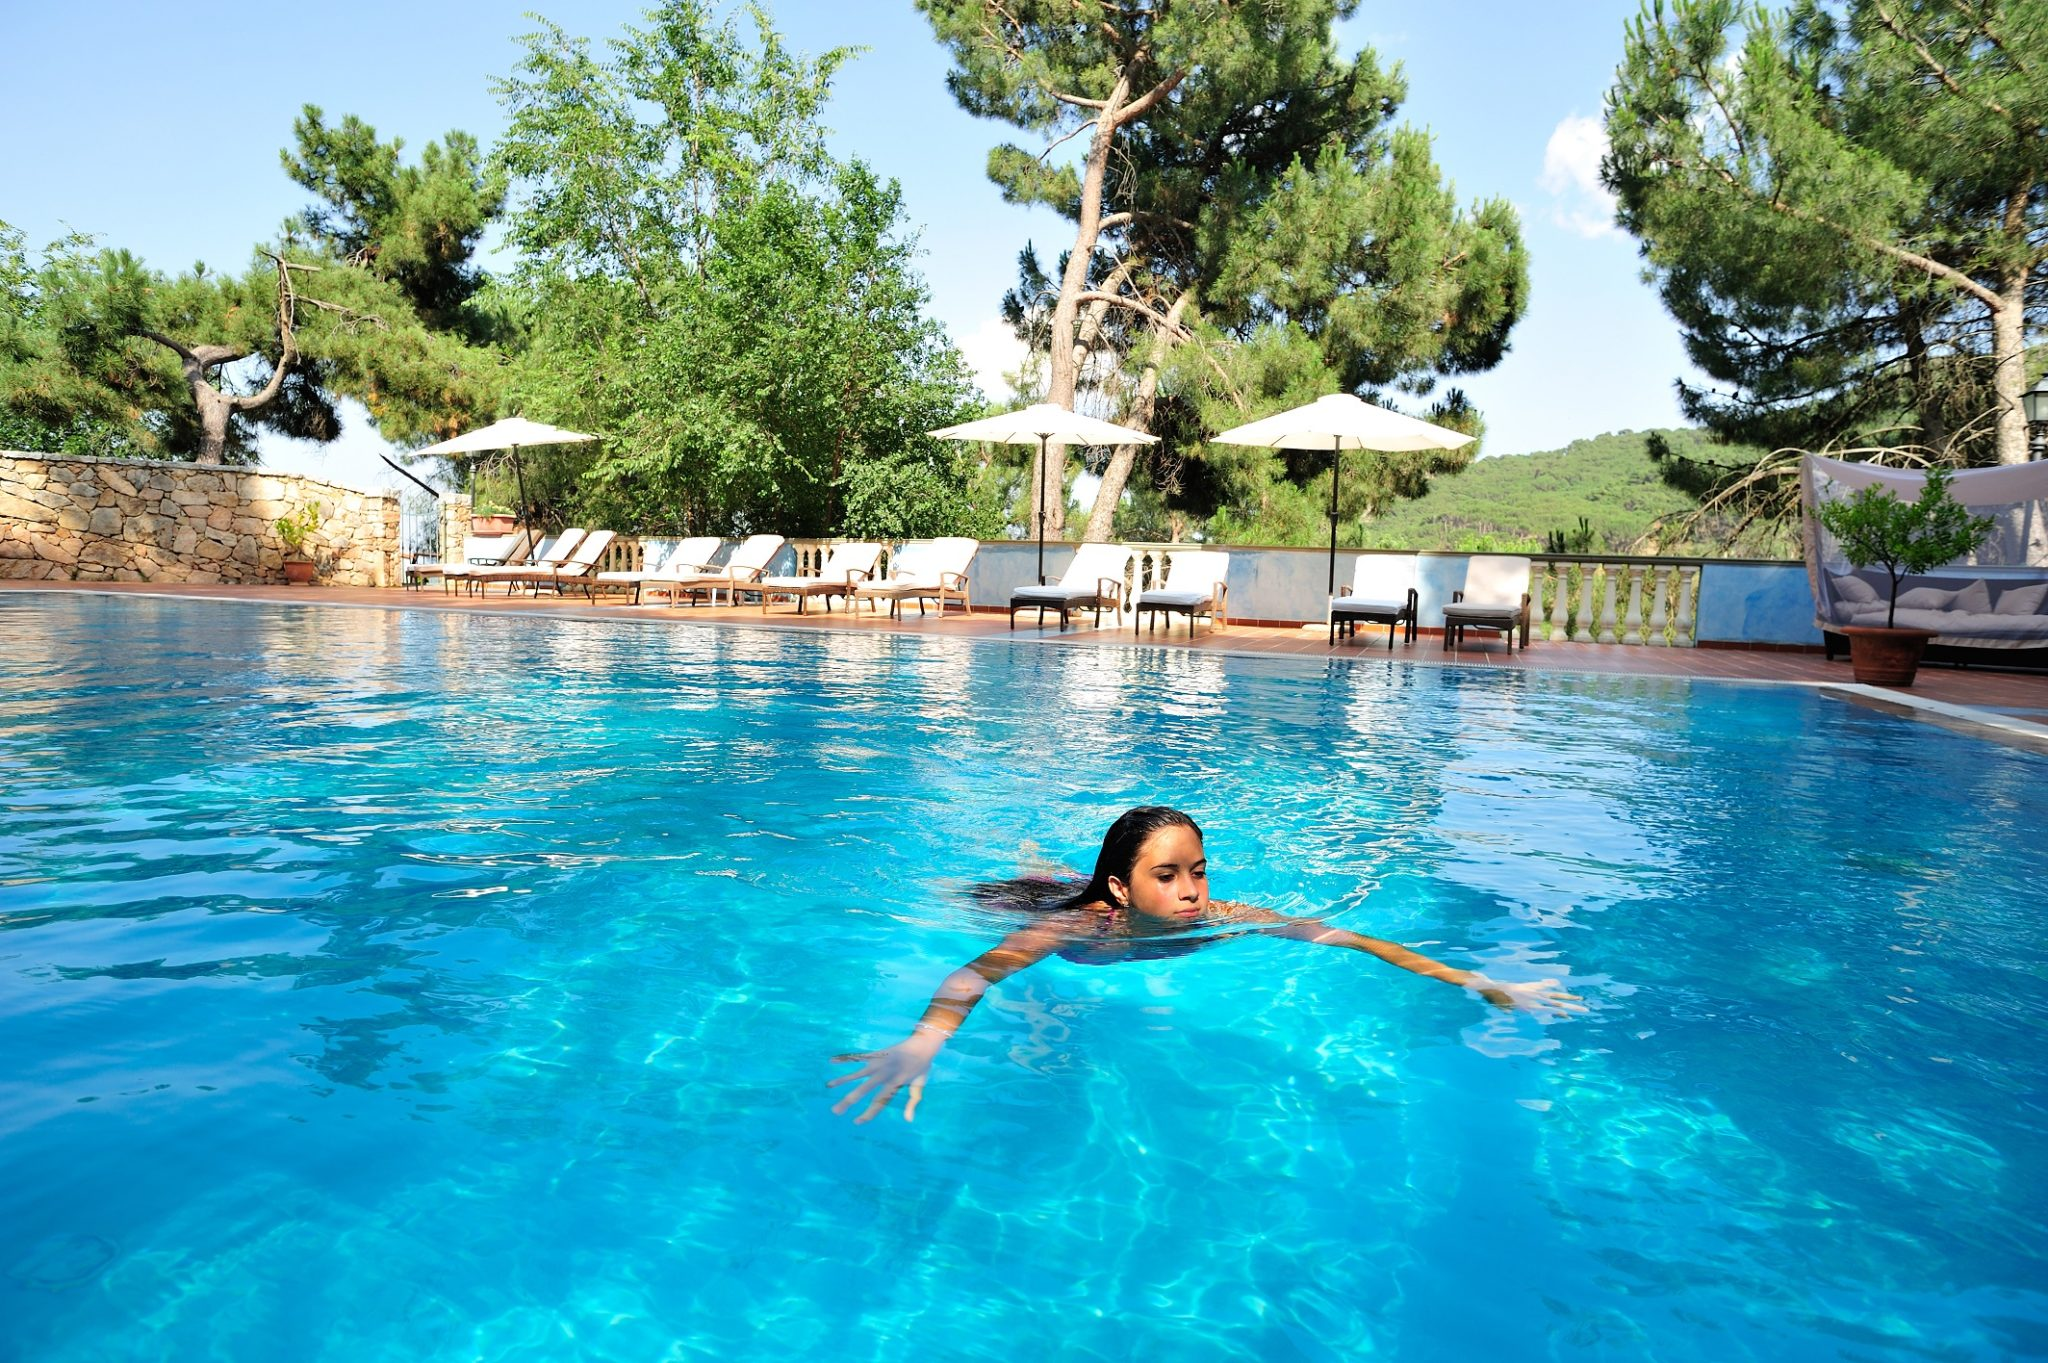 sardinia hotel swimming pool relax luxury bitti